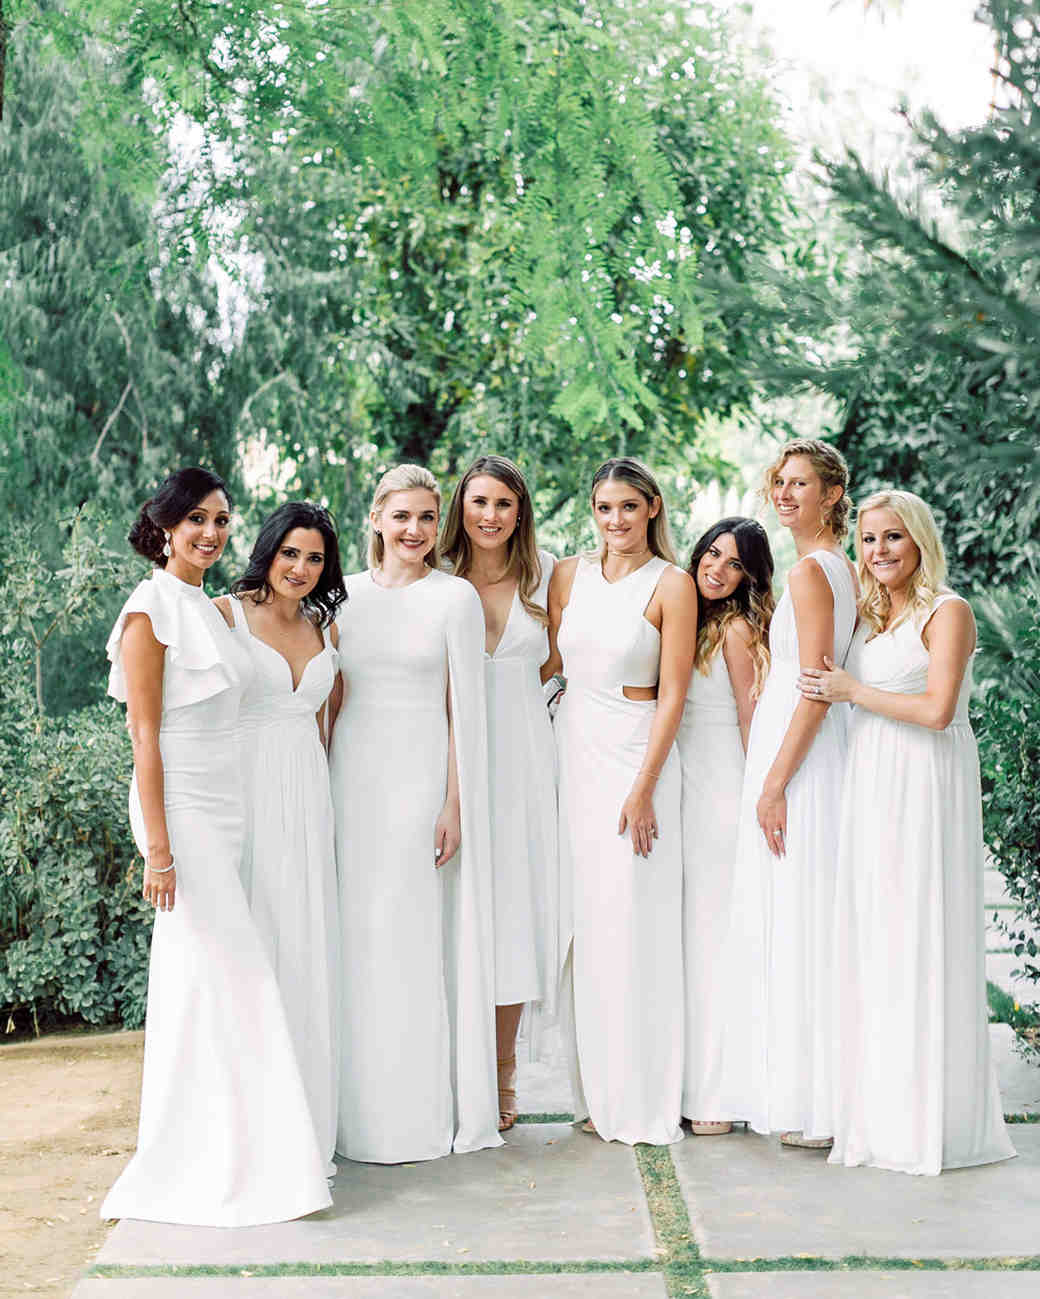 White Bridesmaids Dresses | 26 Chic Bridal Parties Wearing All White Dresses Martha Stewart